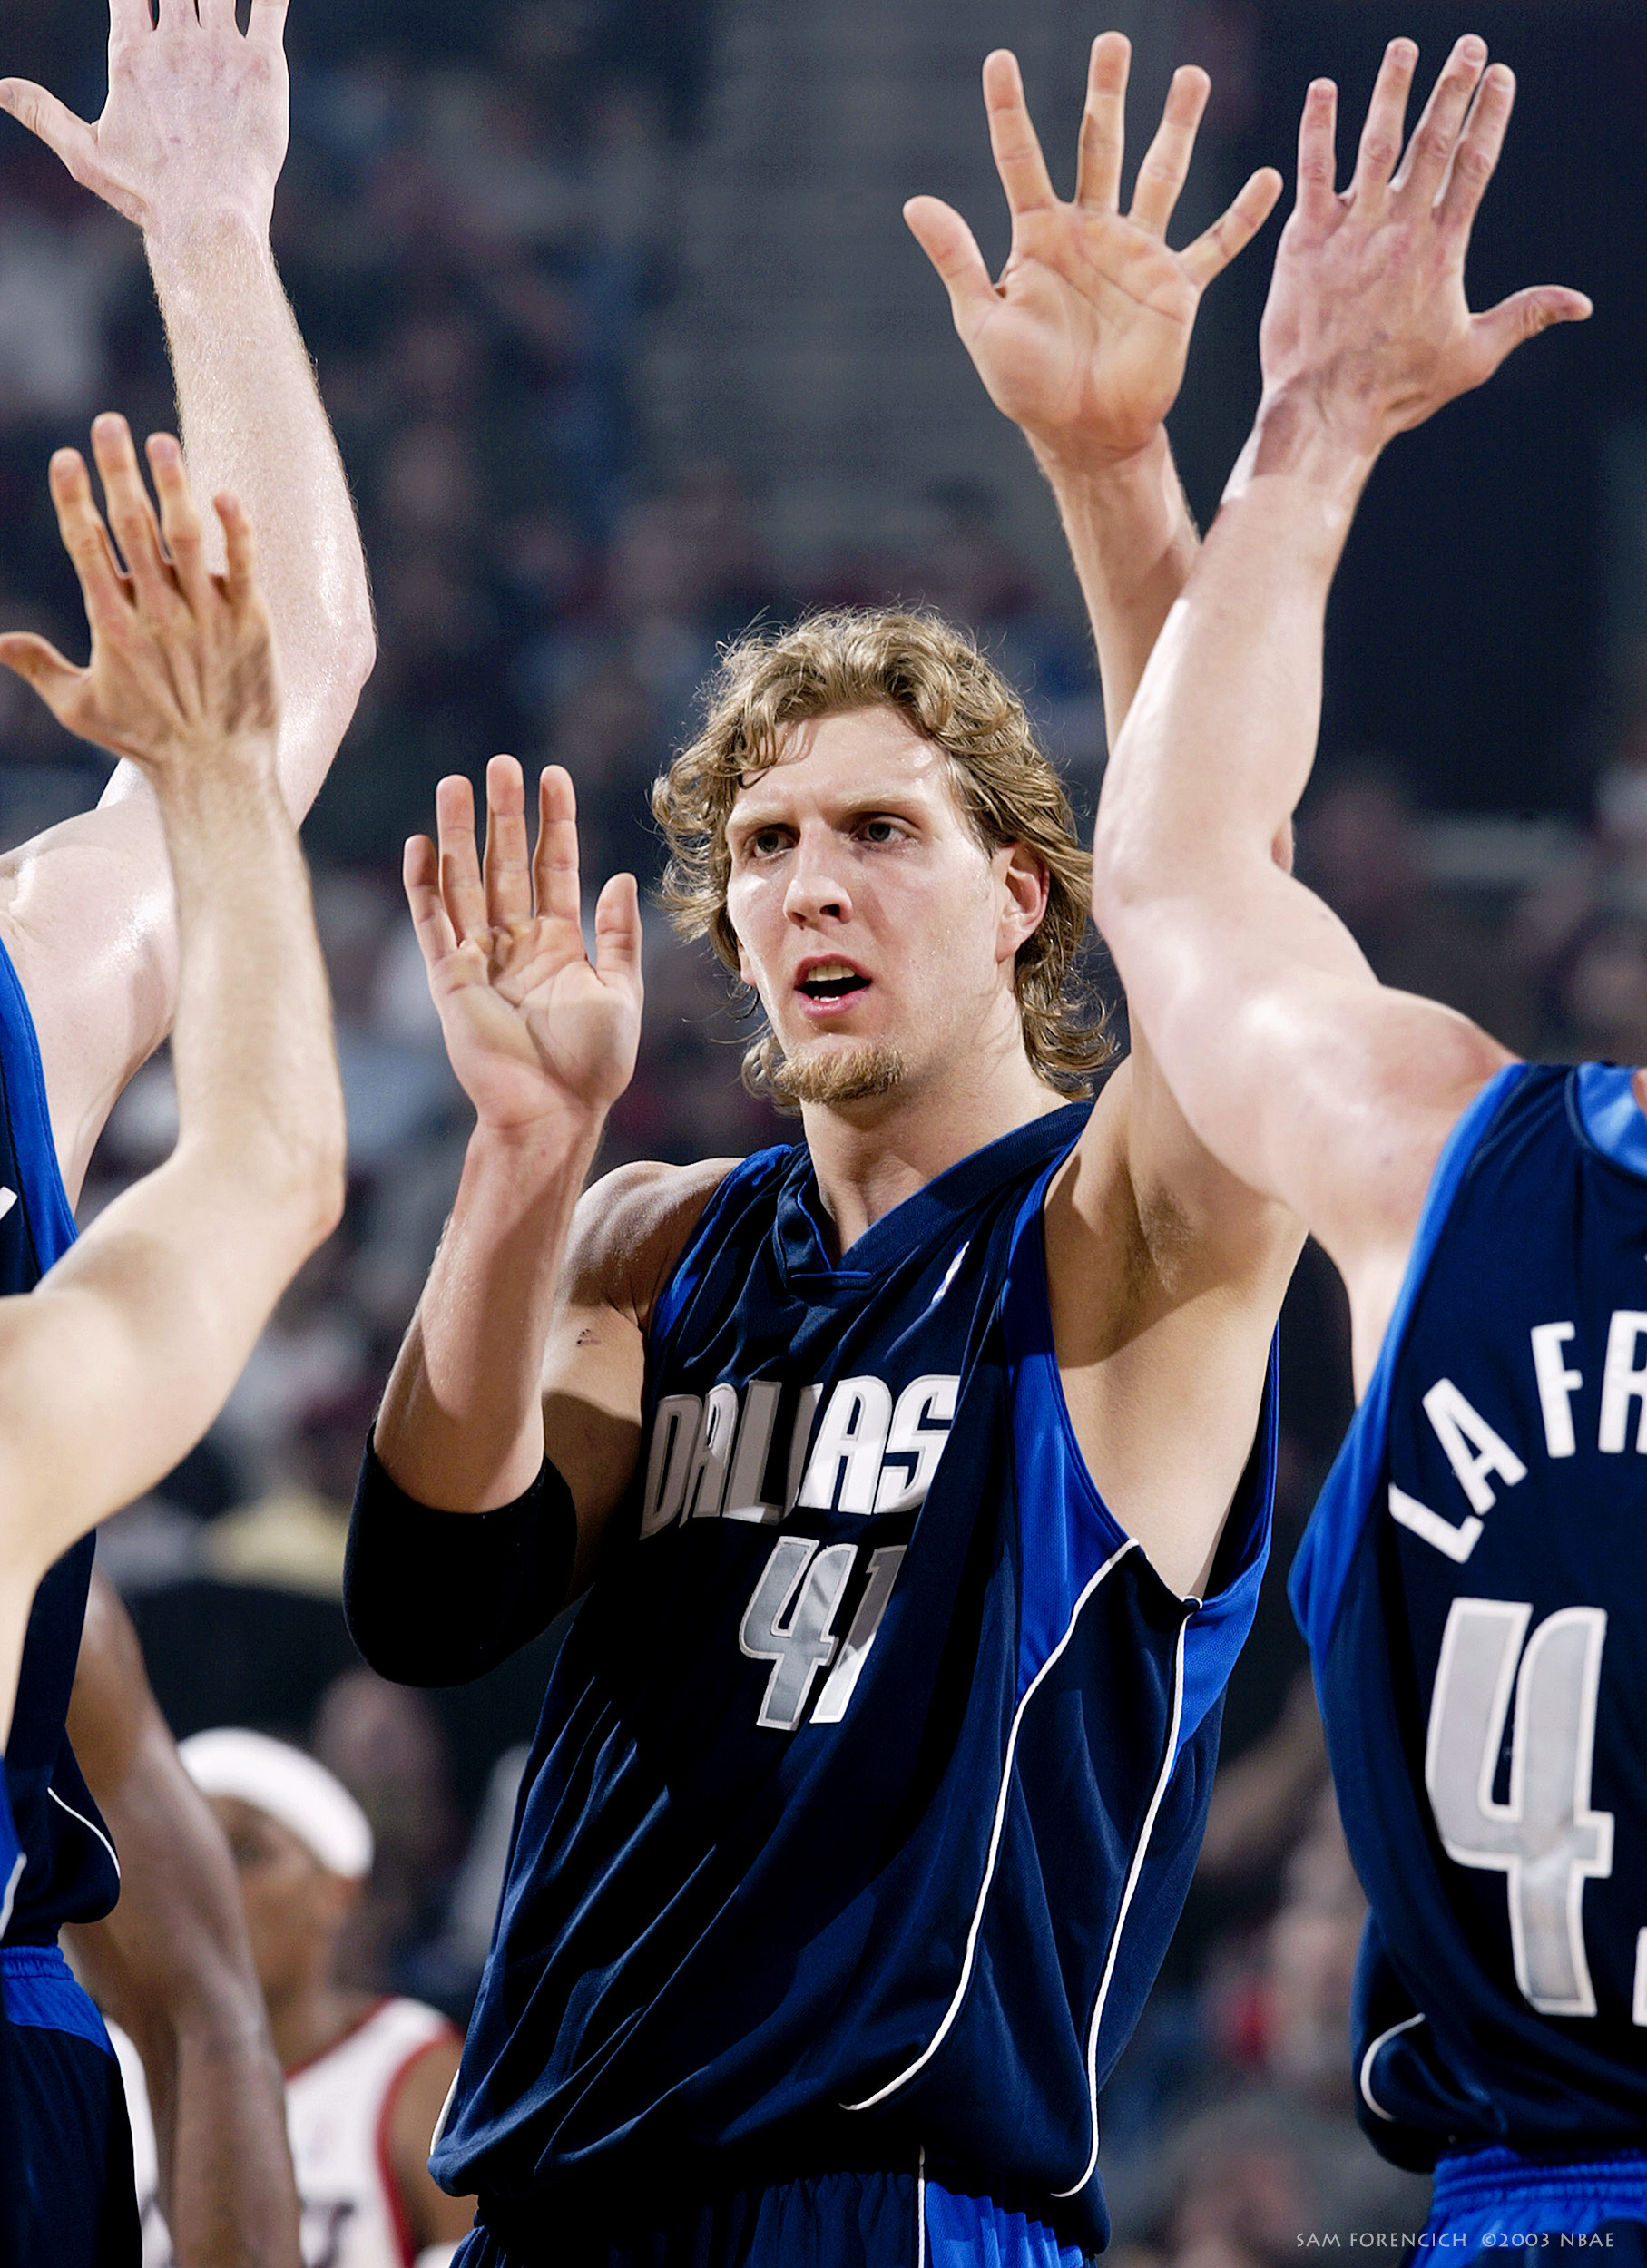 Portland, OR - Dirk Nowitzki #41 of the Dallas Mavericks high-fives his teammates after the play against the Portland Trail Blazers in Game three of the Western Conference Quarterfinals during the 2003 NBA Playoffs at The Rose Garden on April 25, 2003. Digital 35mm, arena strobe lighting.  Sam Forencich ©2003 NBAE